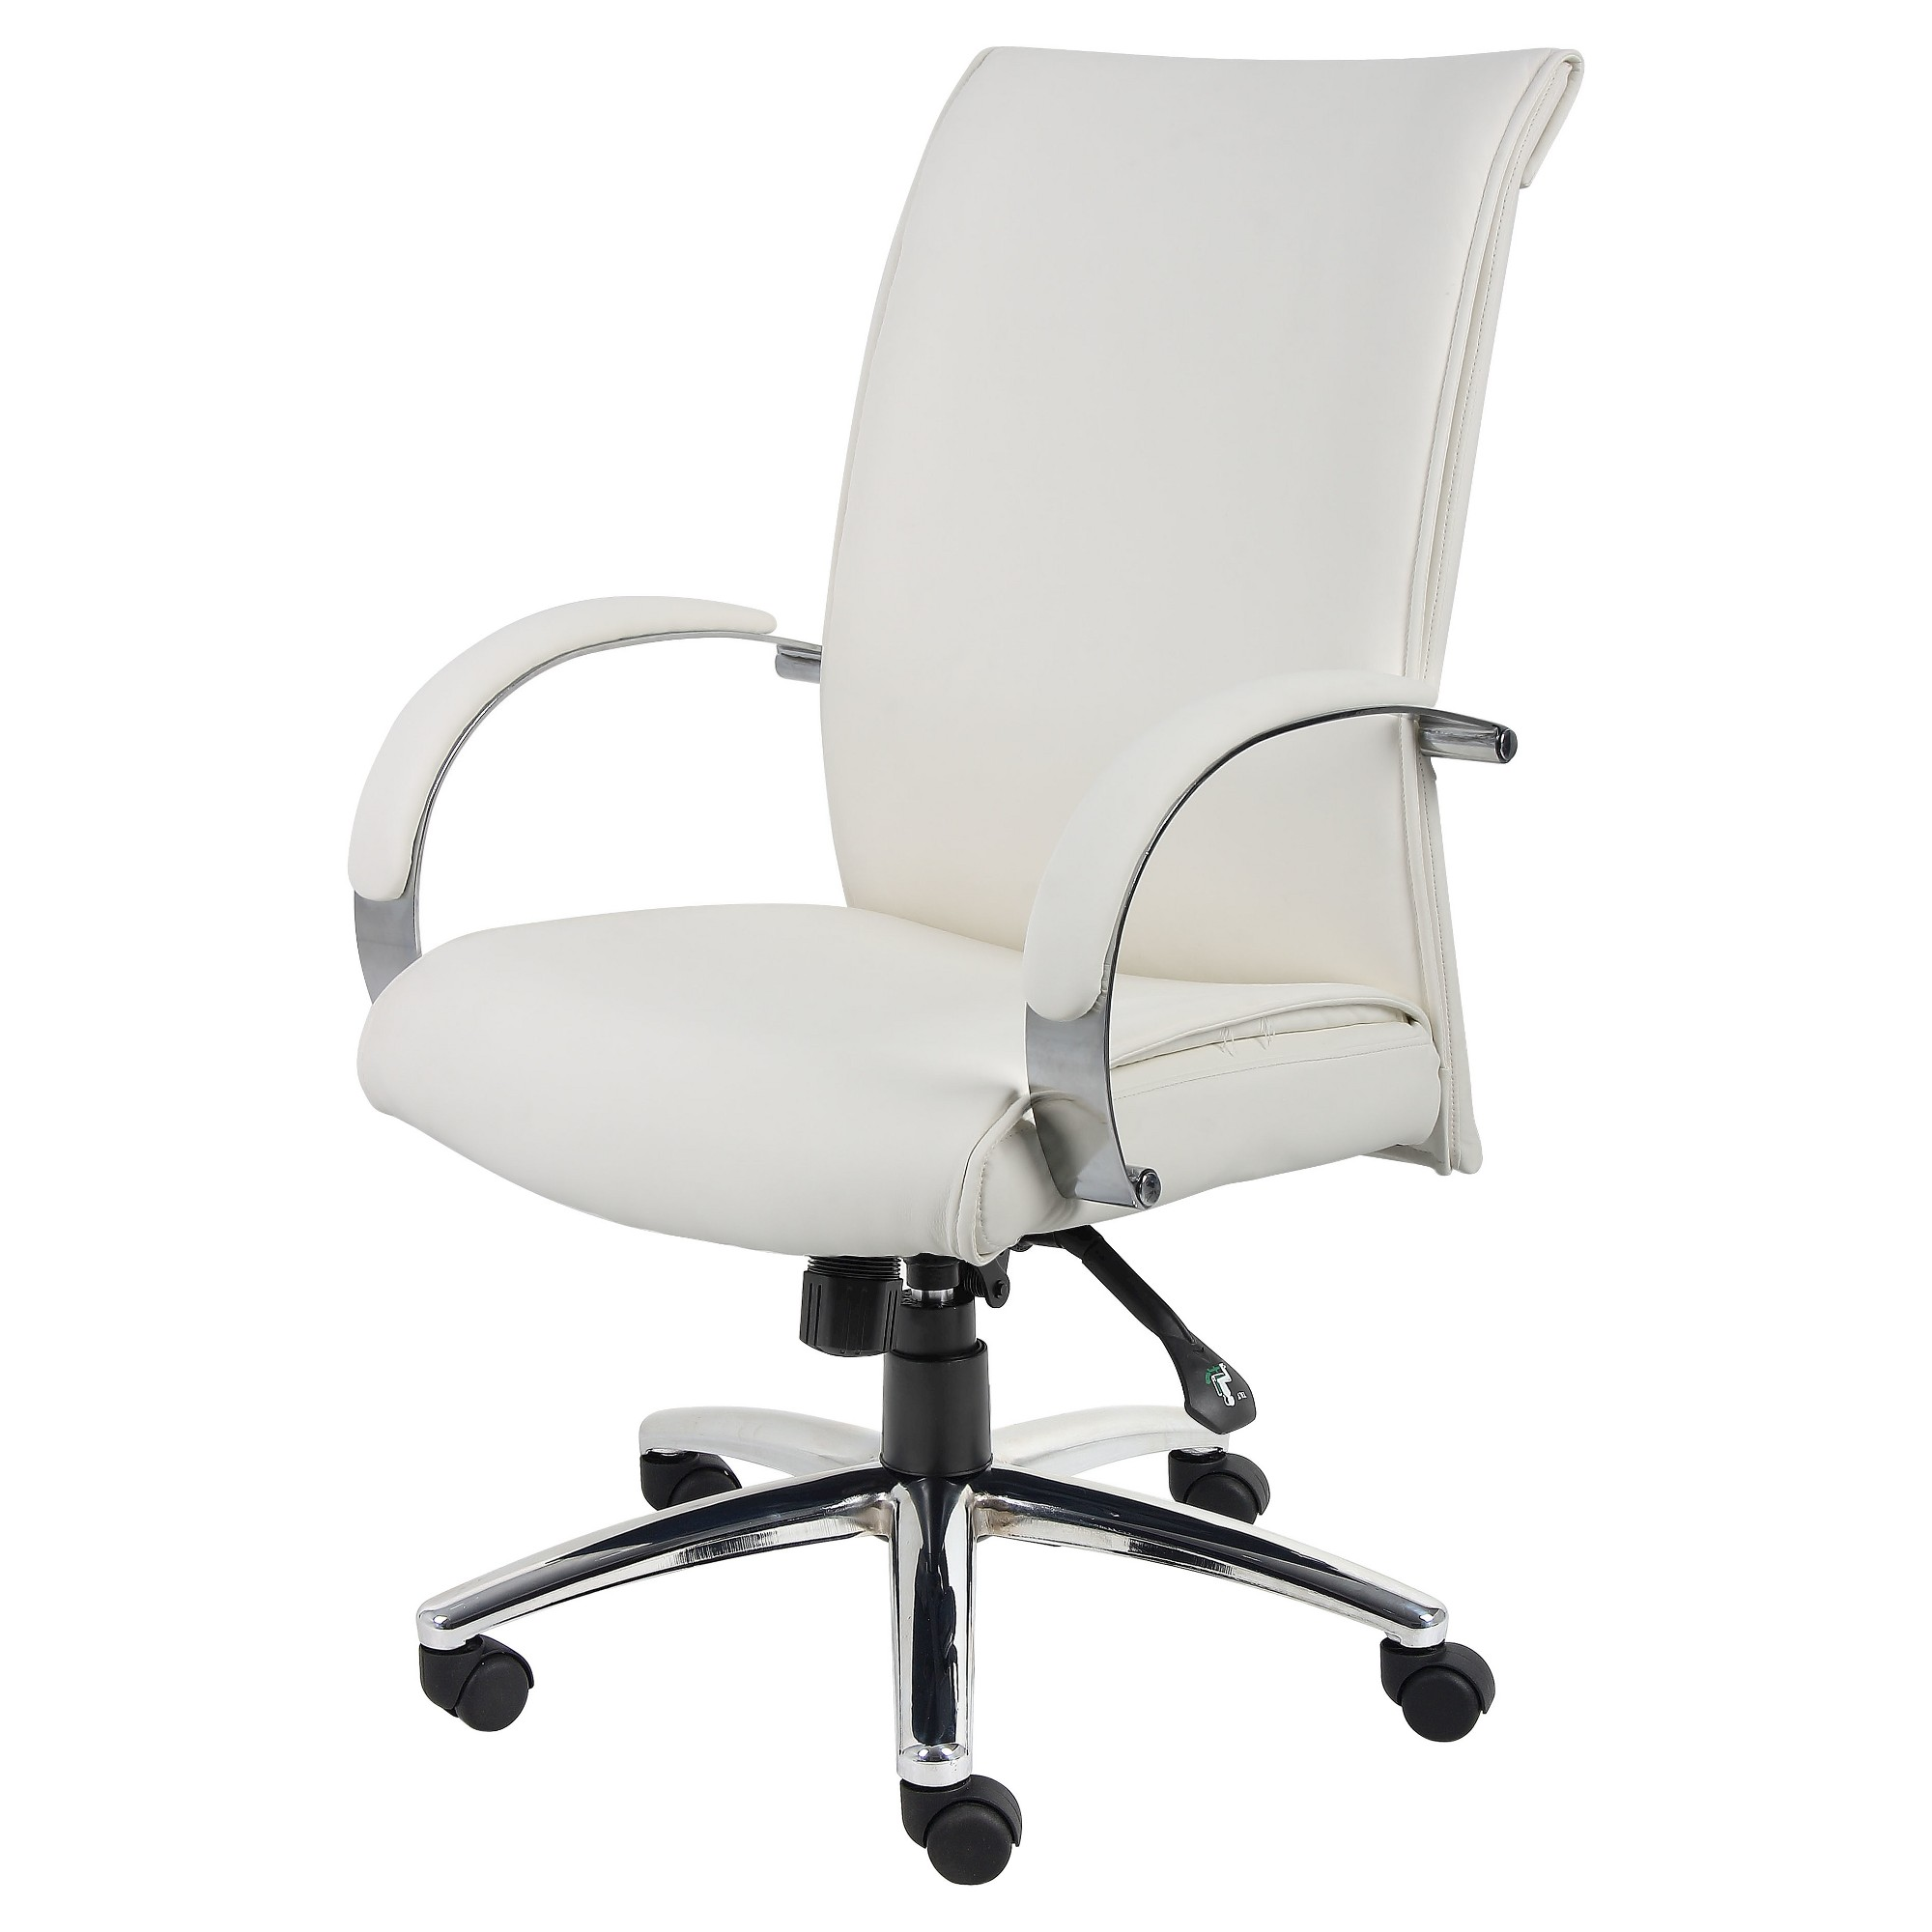 Caressoftplus executive series boss office products